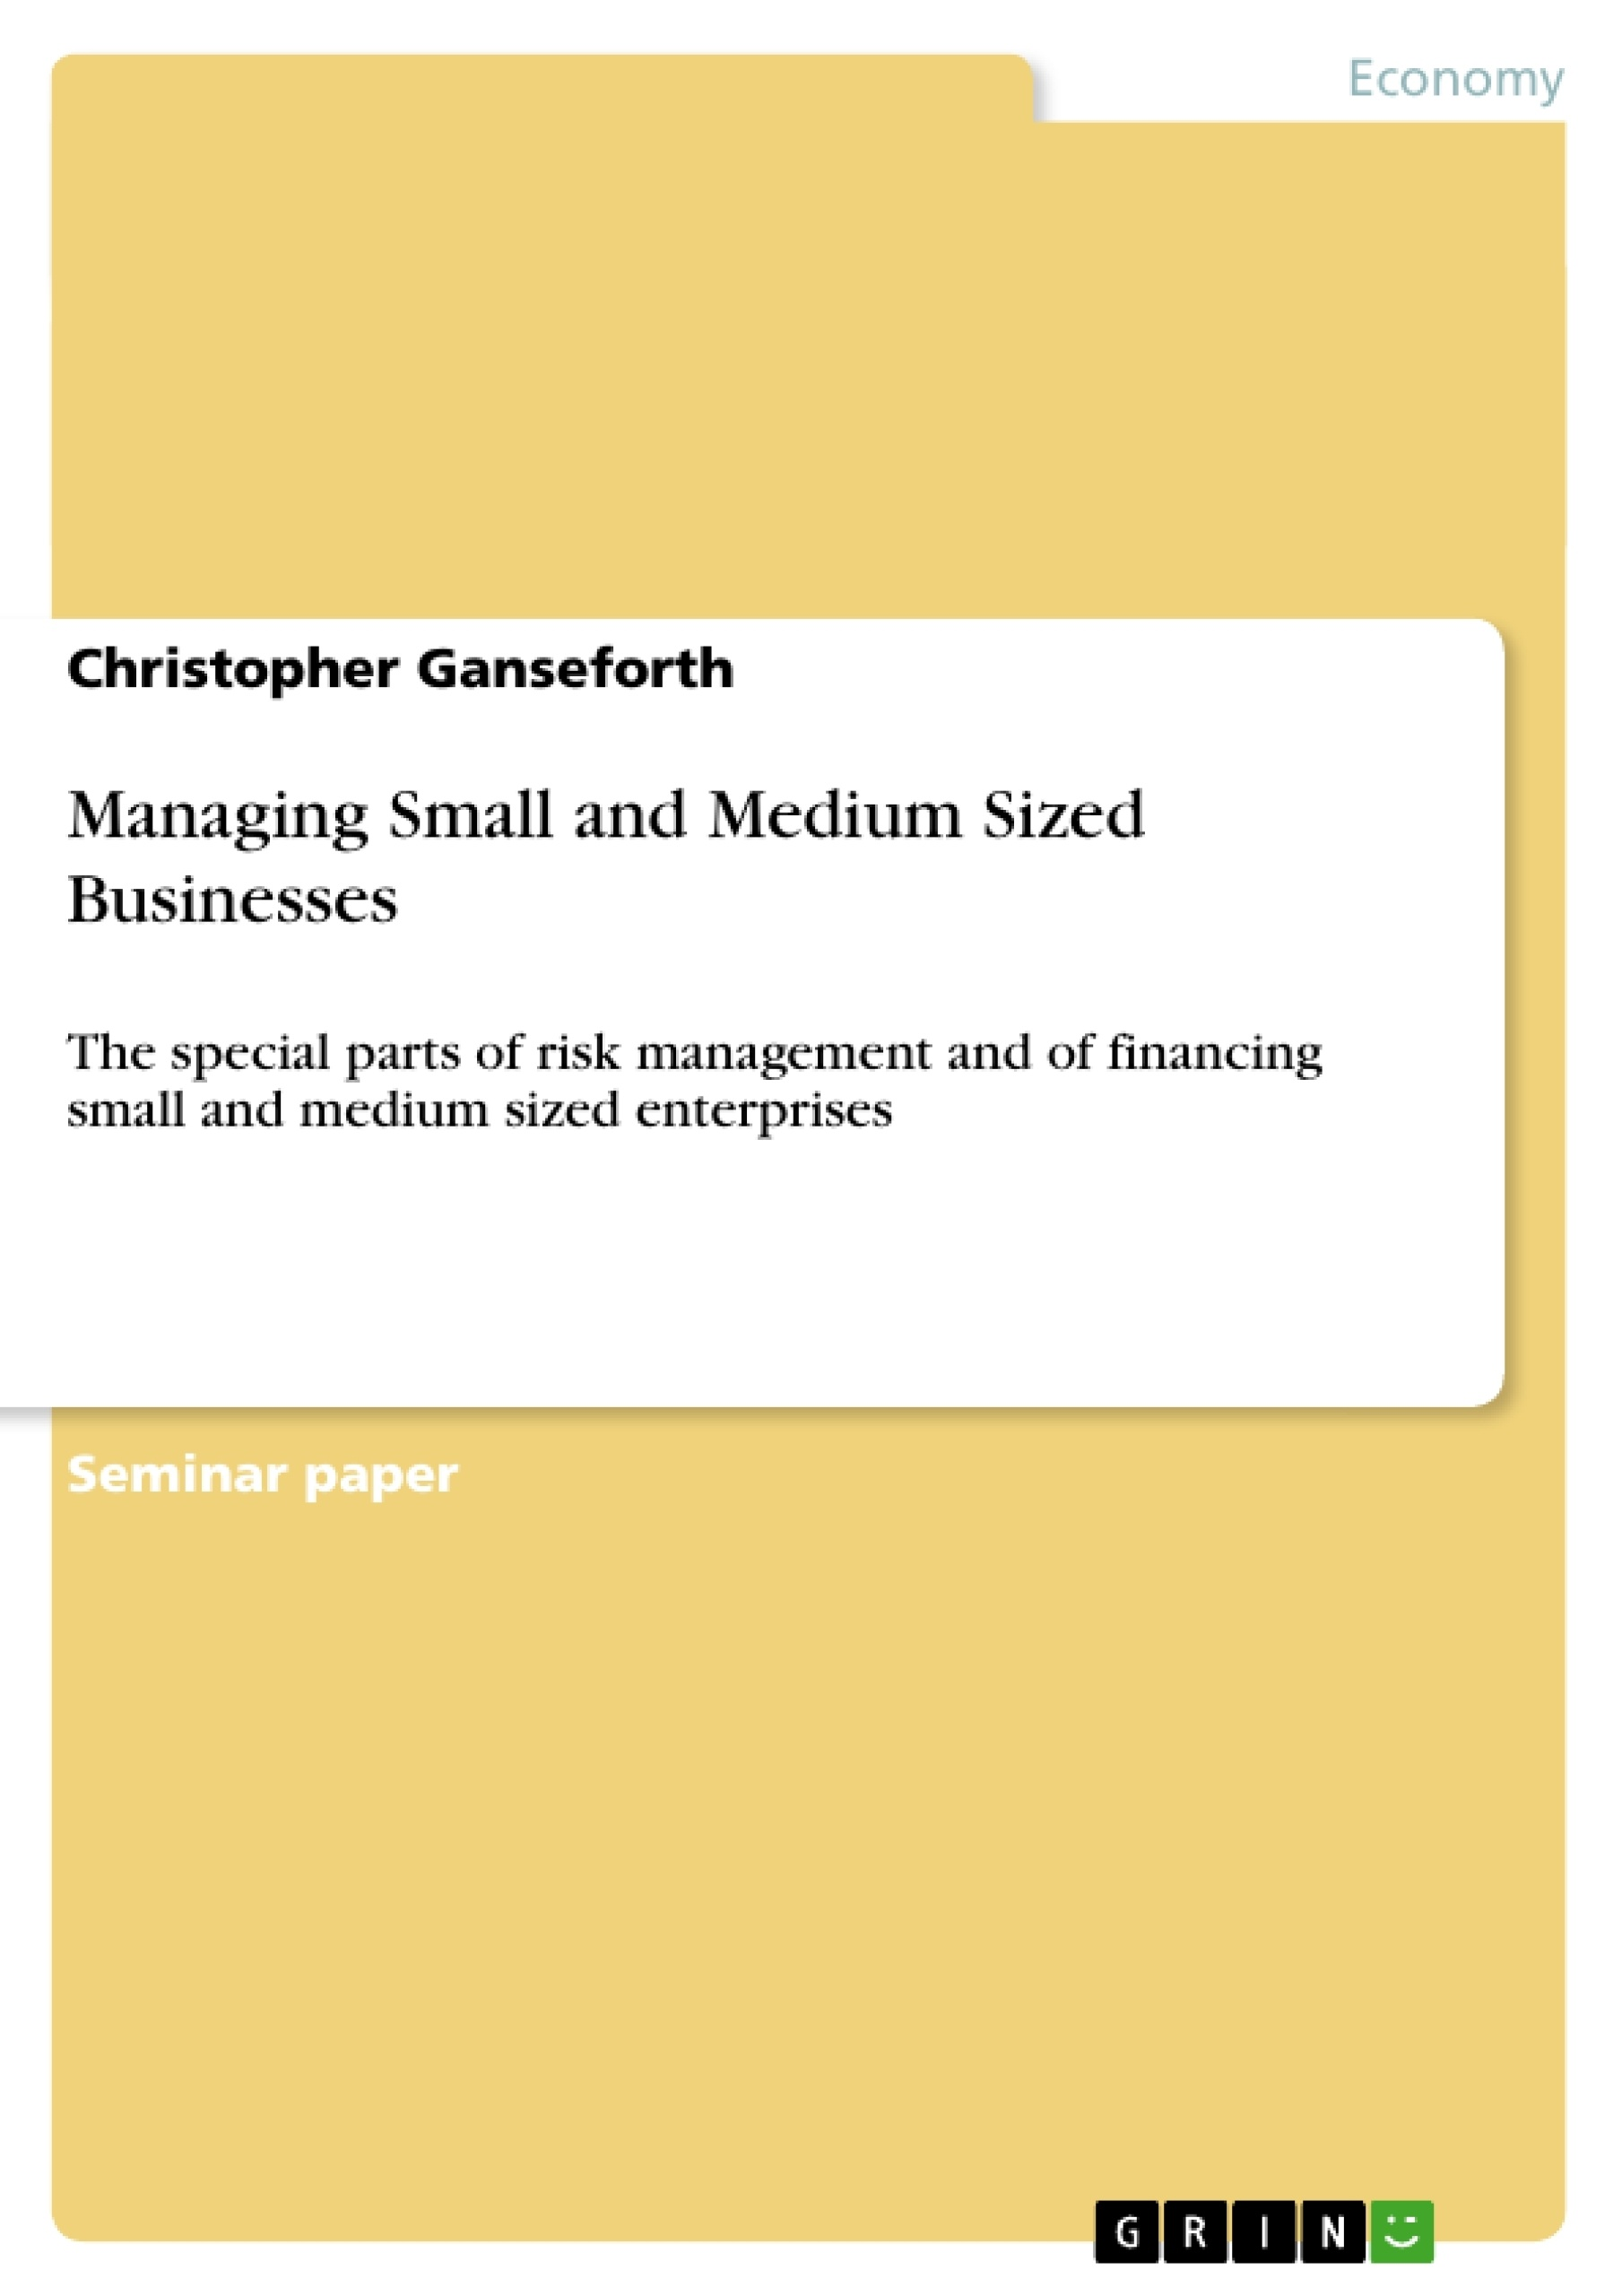 Title: Managing Small and Medium Sized Businesses